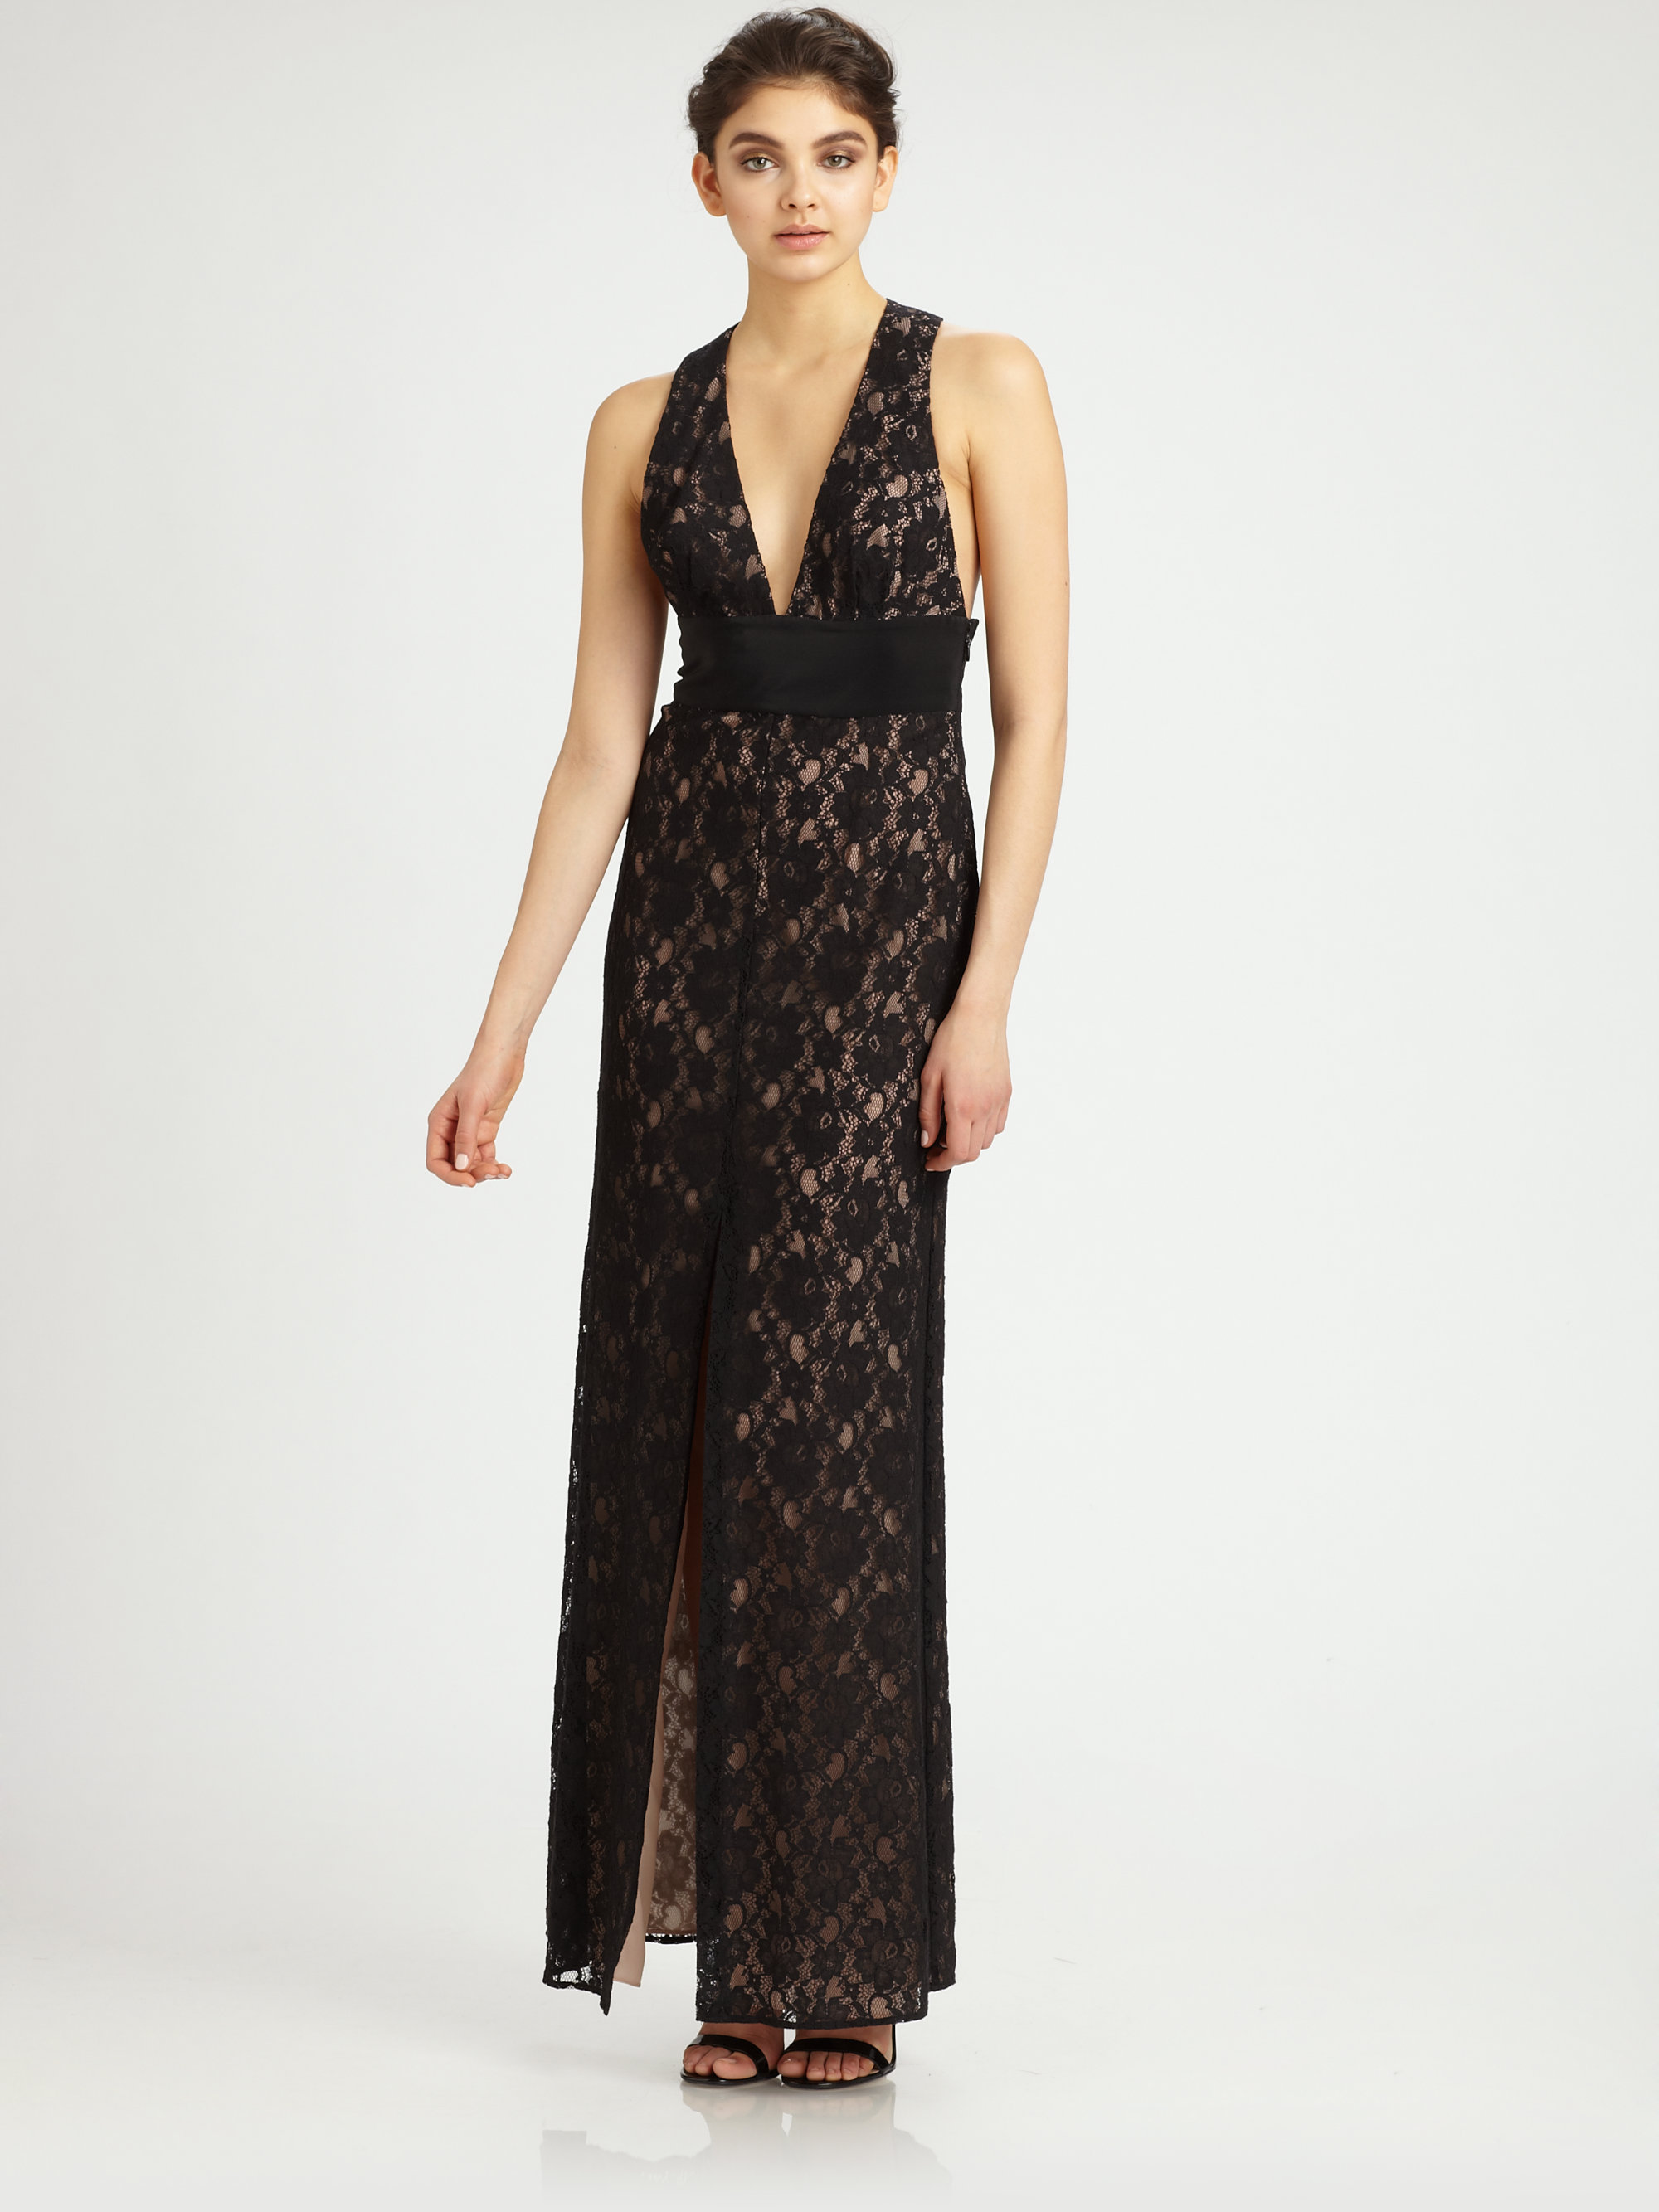 Lyst - Bcbgmaxazria Lace Gown in Black